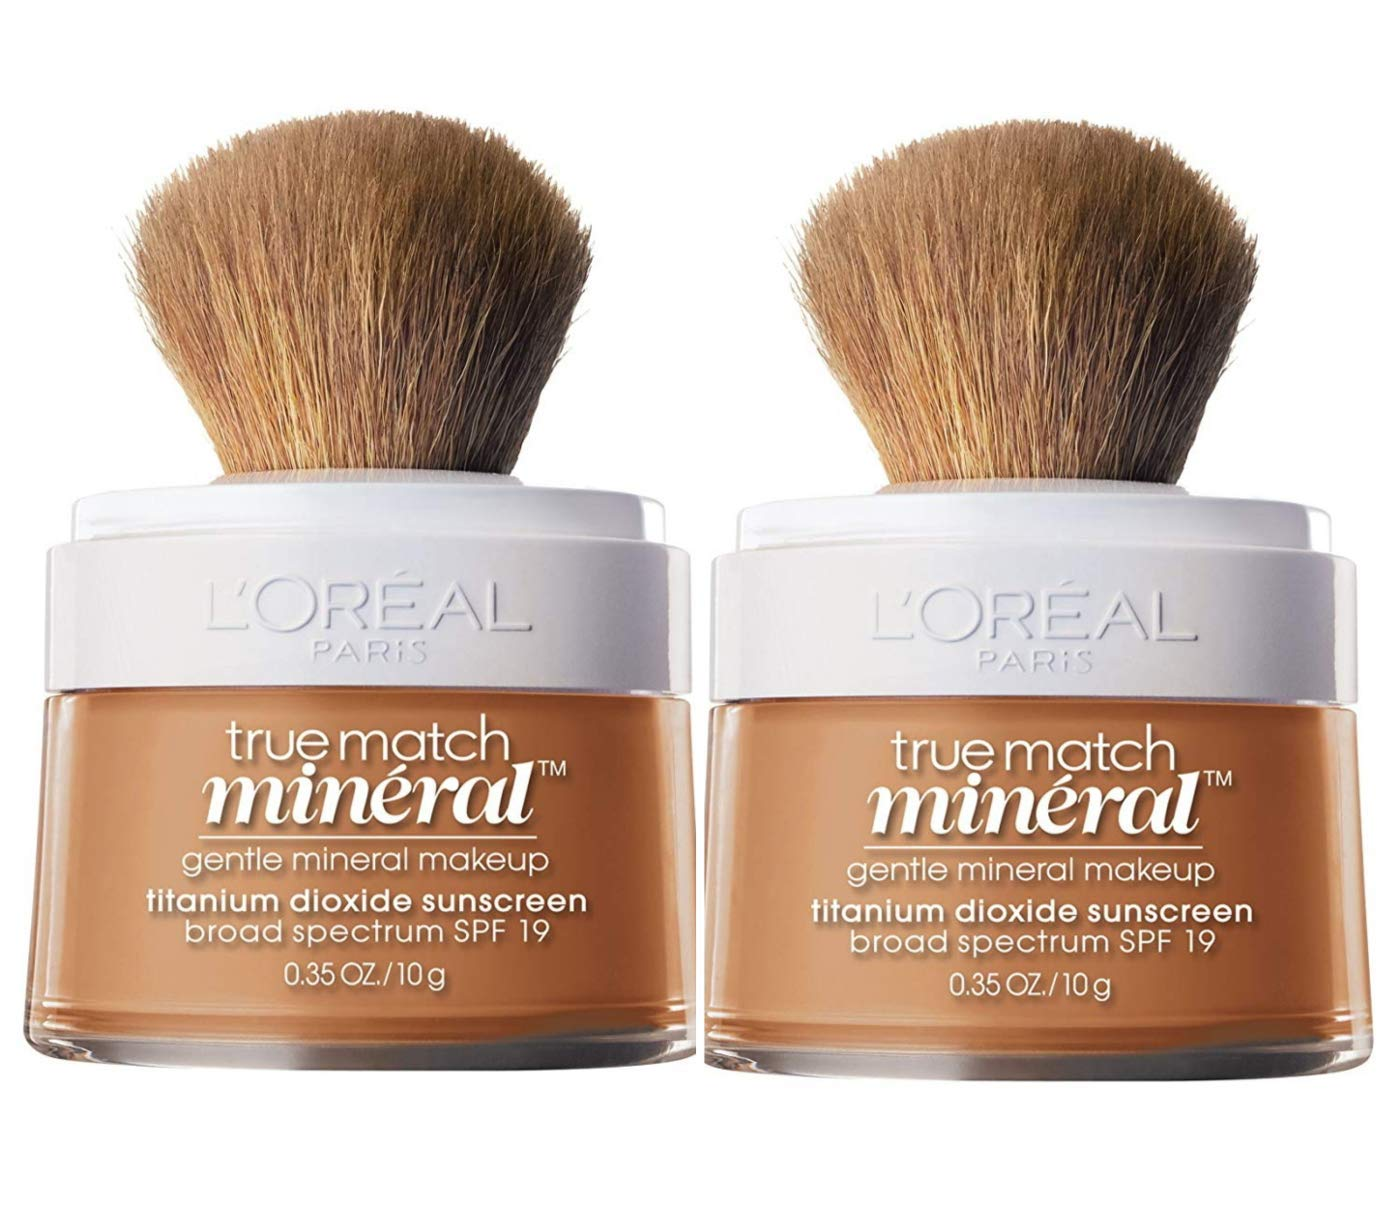 L'Oreal Paris True Match Mineral Foundation